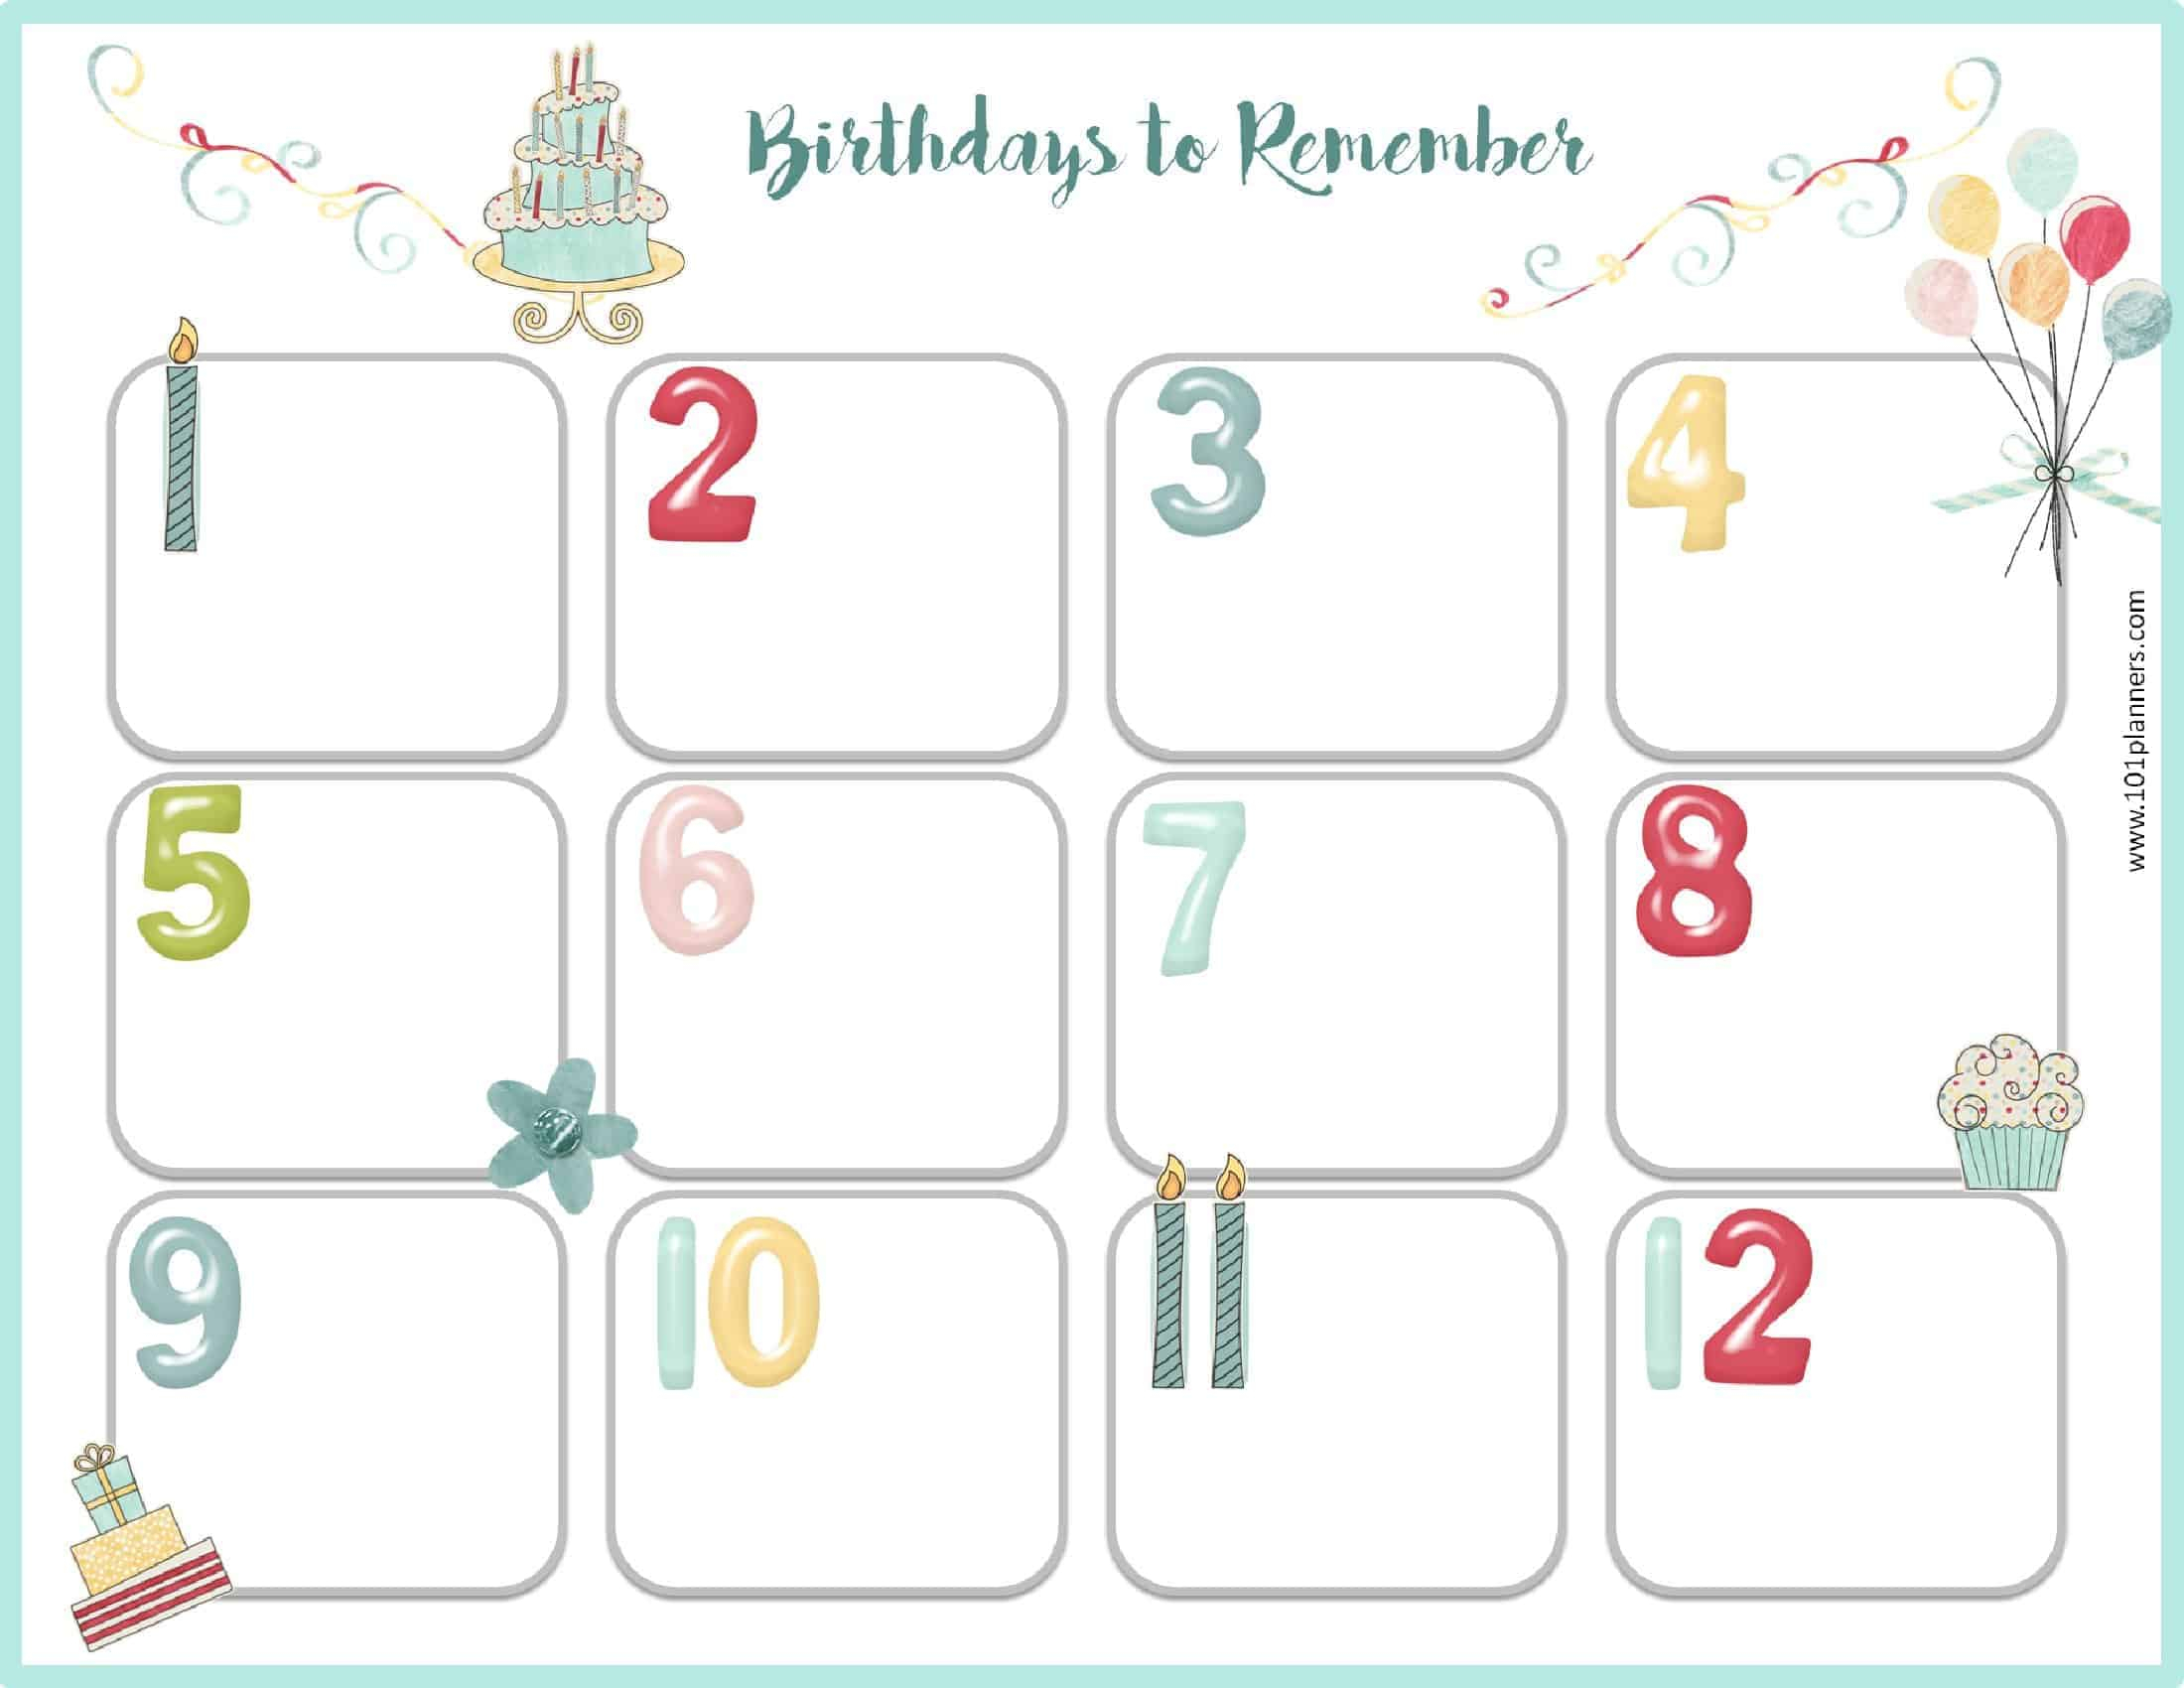 Birthday Calendar Template for Monthly Birthday Calendar Template